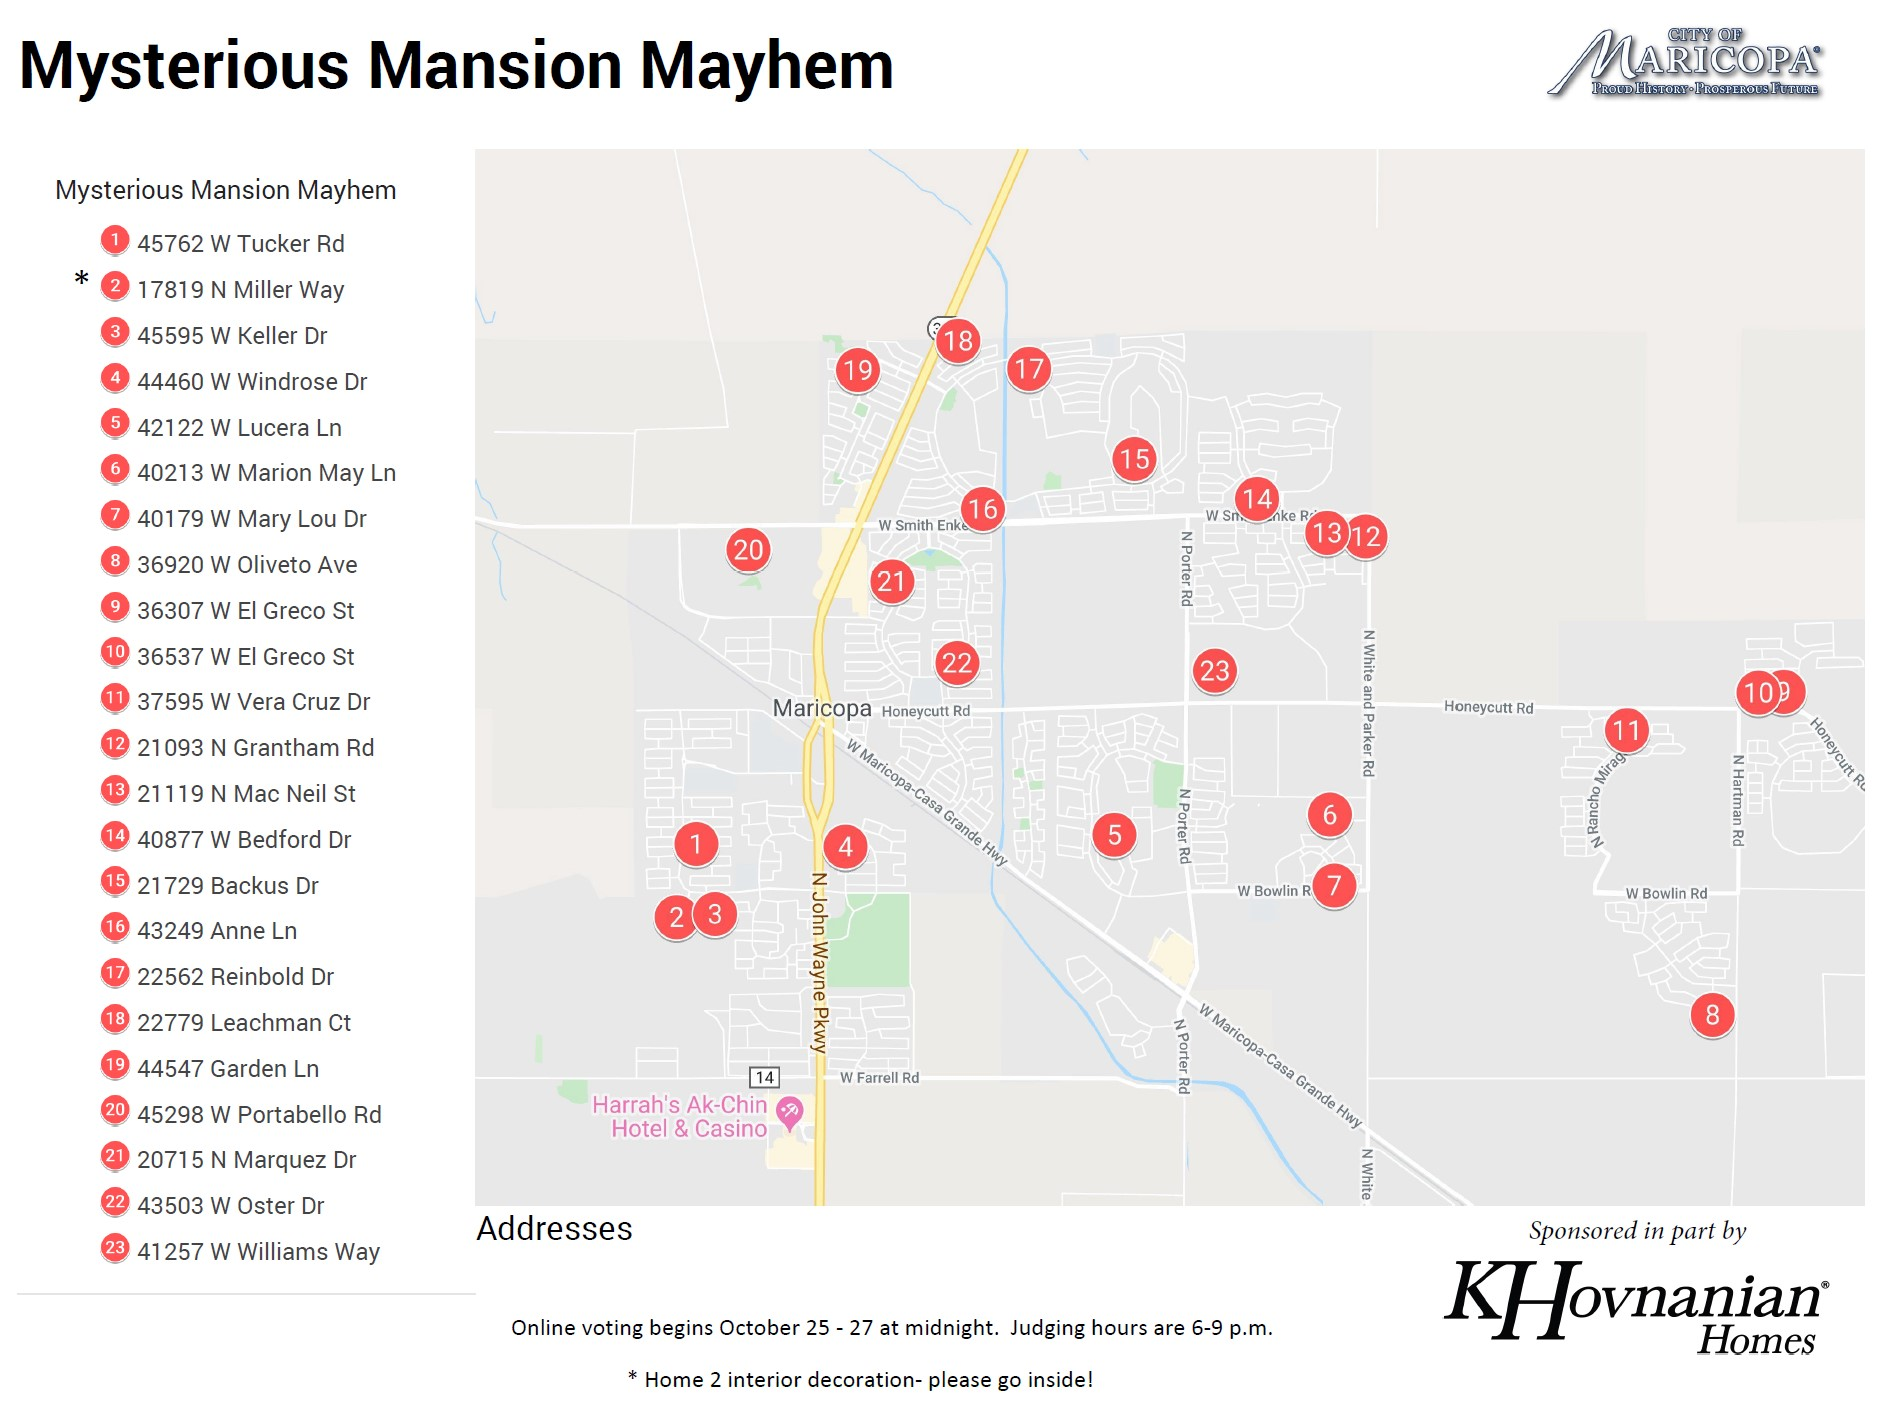 Mysterious Mansion Mayhem Map is Here! | Maricopa eNews ...